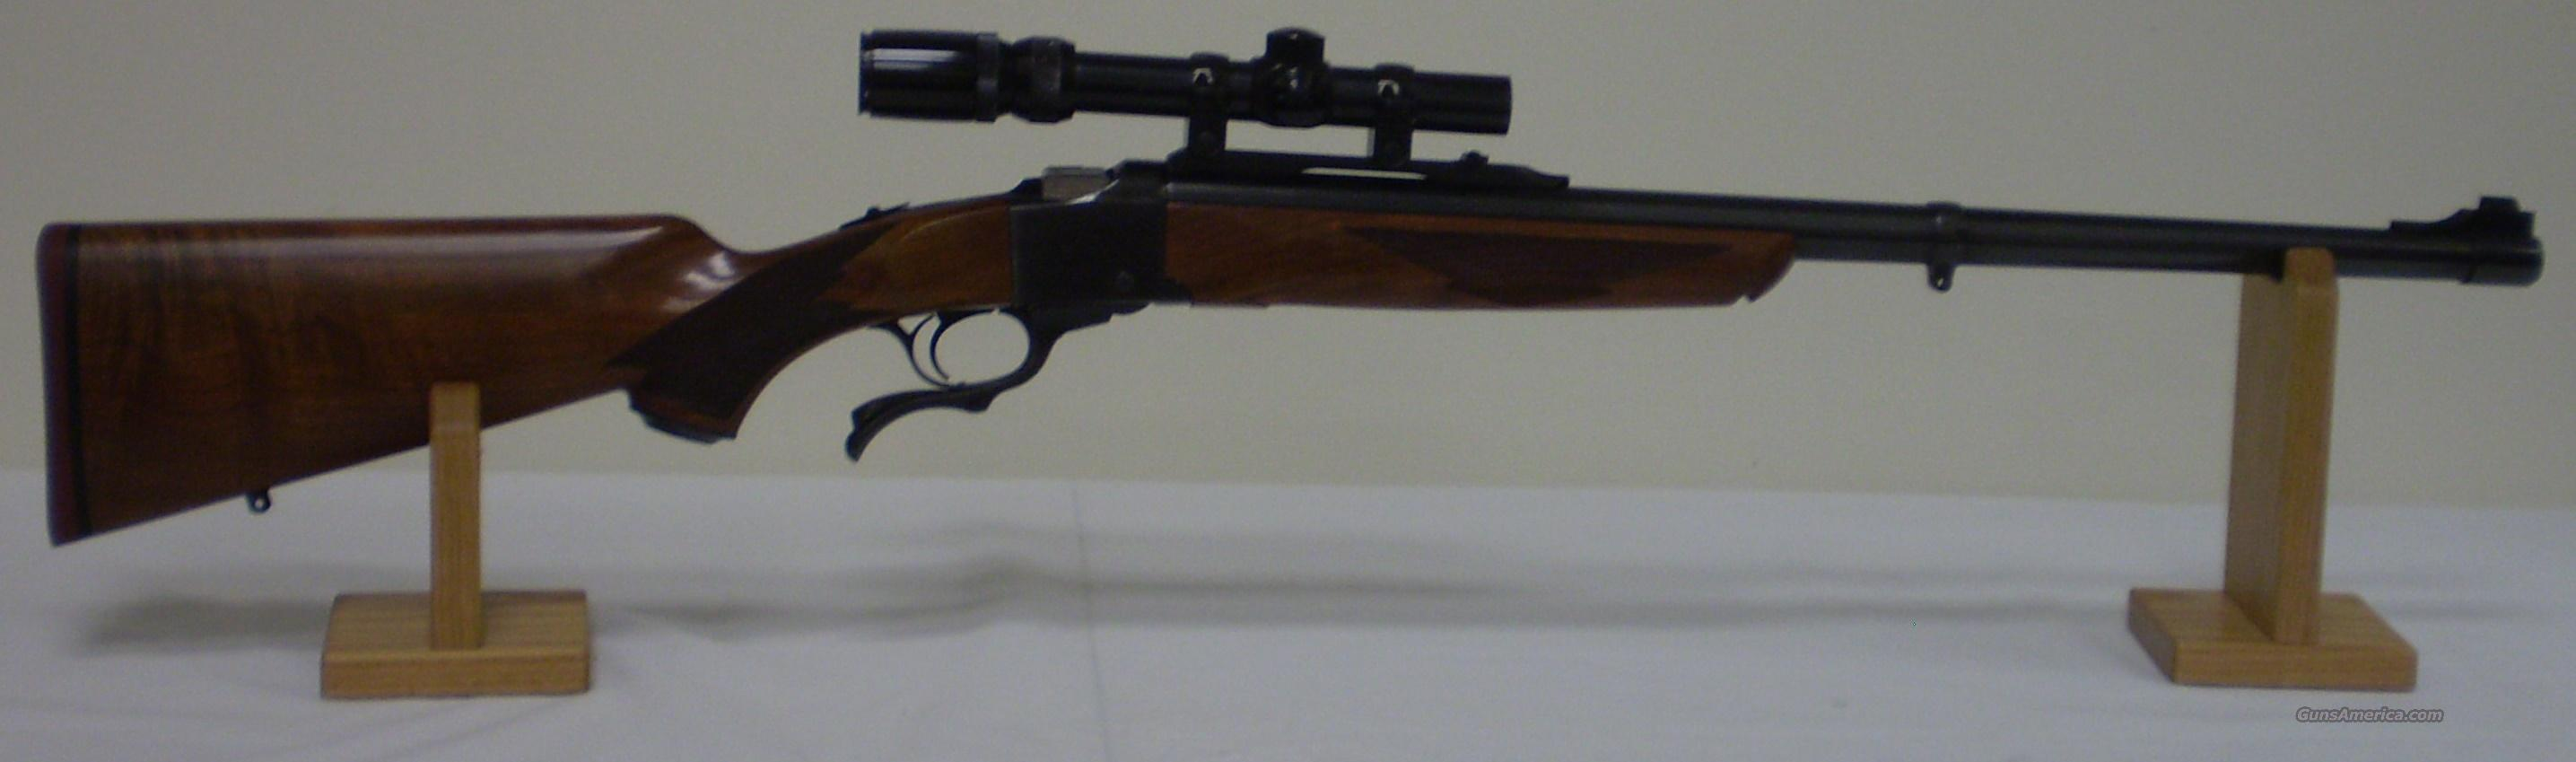 Ruger No 1 Tropical 458 WinMag (1985) w/Scope  Guns > Rifles > Ruger Rifles > #1 Type